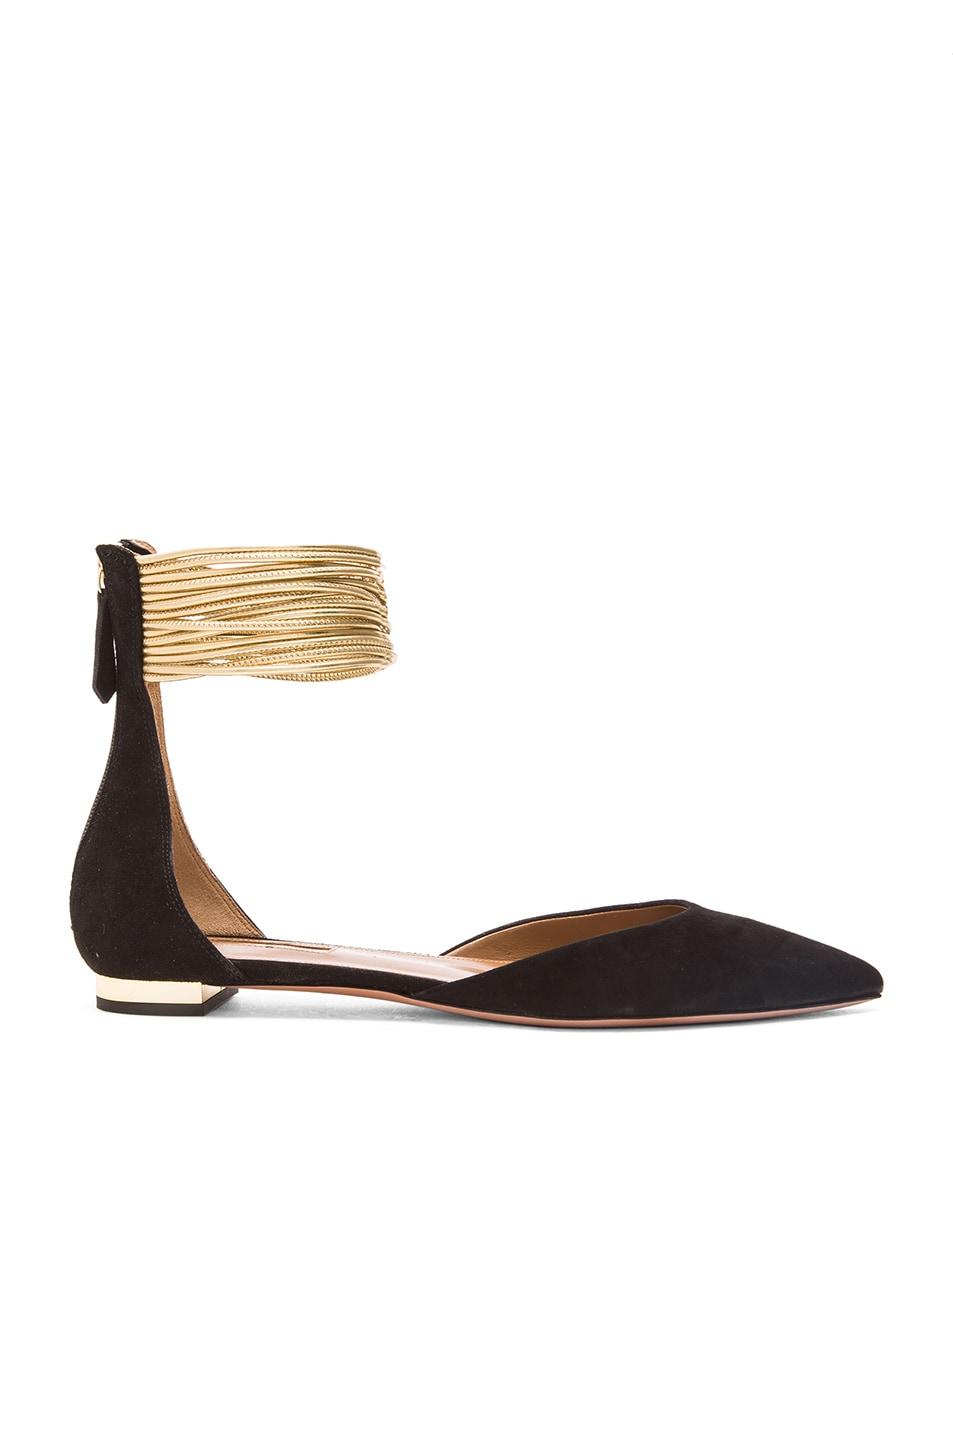 Image 1 of Aquazzura Hello Lover Suede Flats in Black